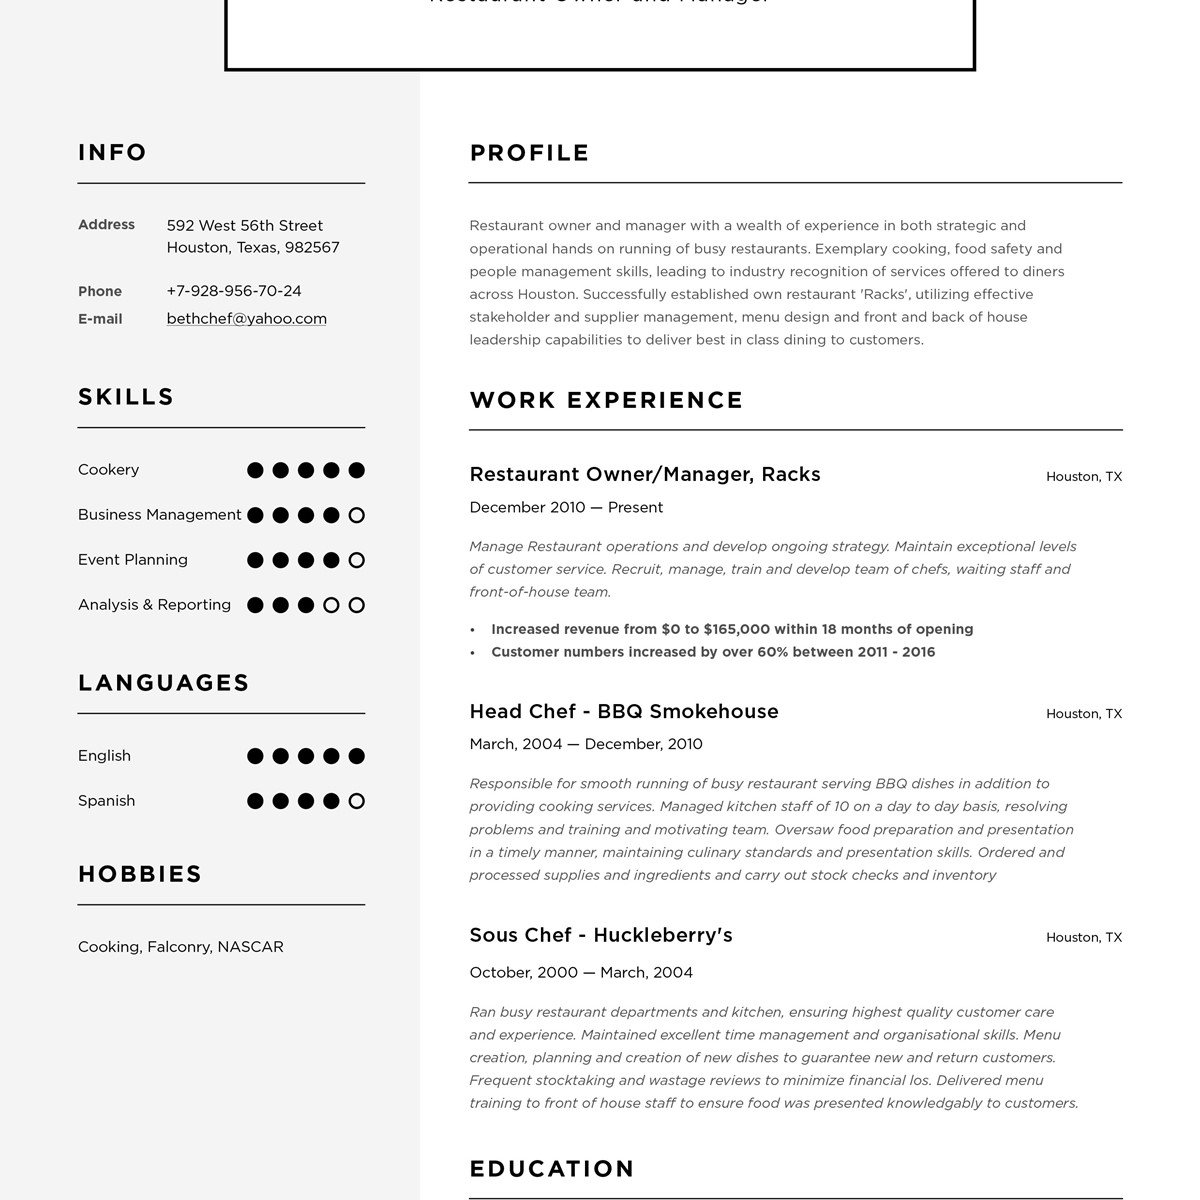 open source resume builder resume io alternatives and similar websites and apps resume io alternatives and similar websites and apps alternativeto net - Open Source Resume Builder